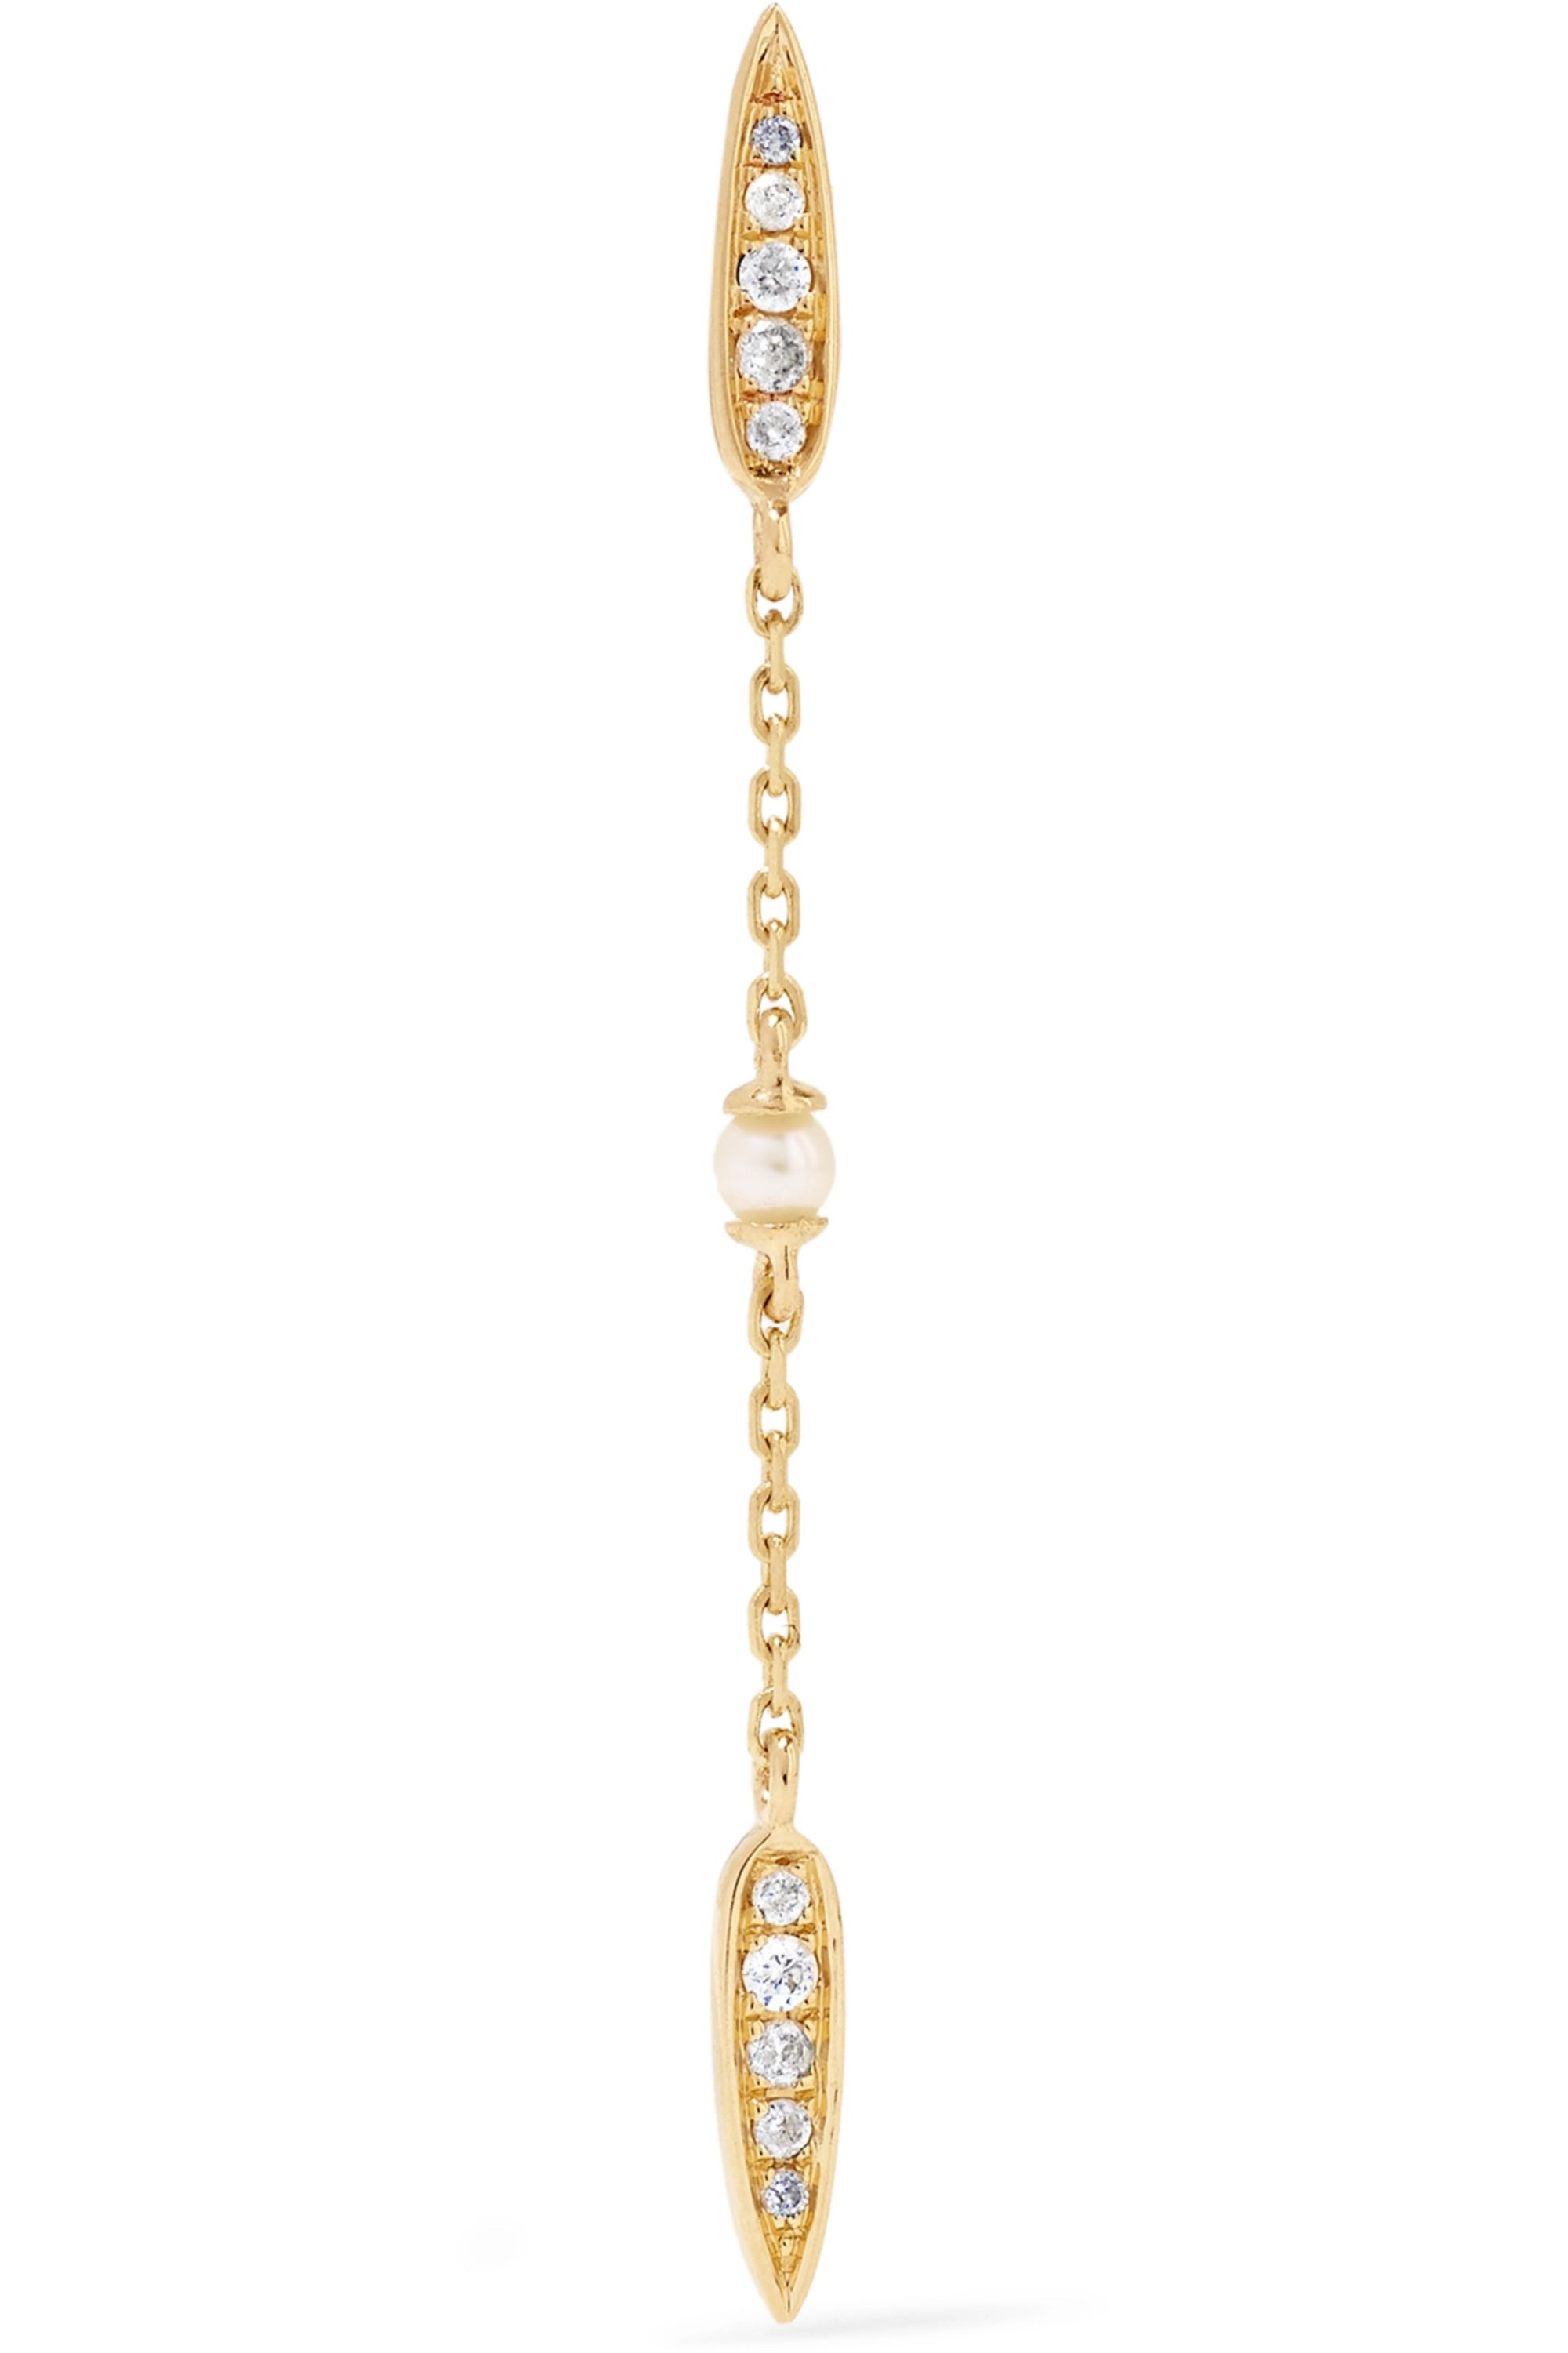 Anissa Kermiche 14-karat gold, diamond and pearl earring